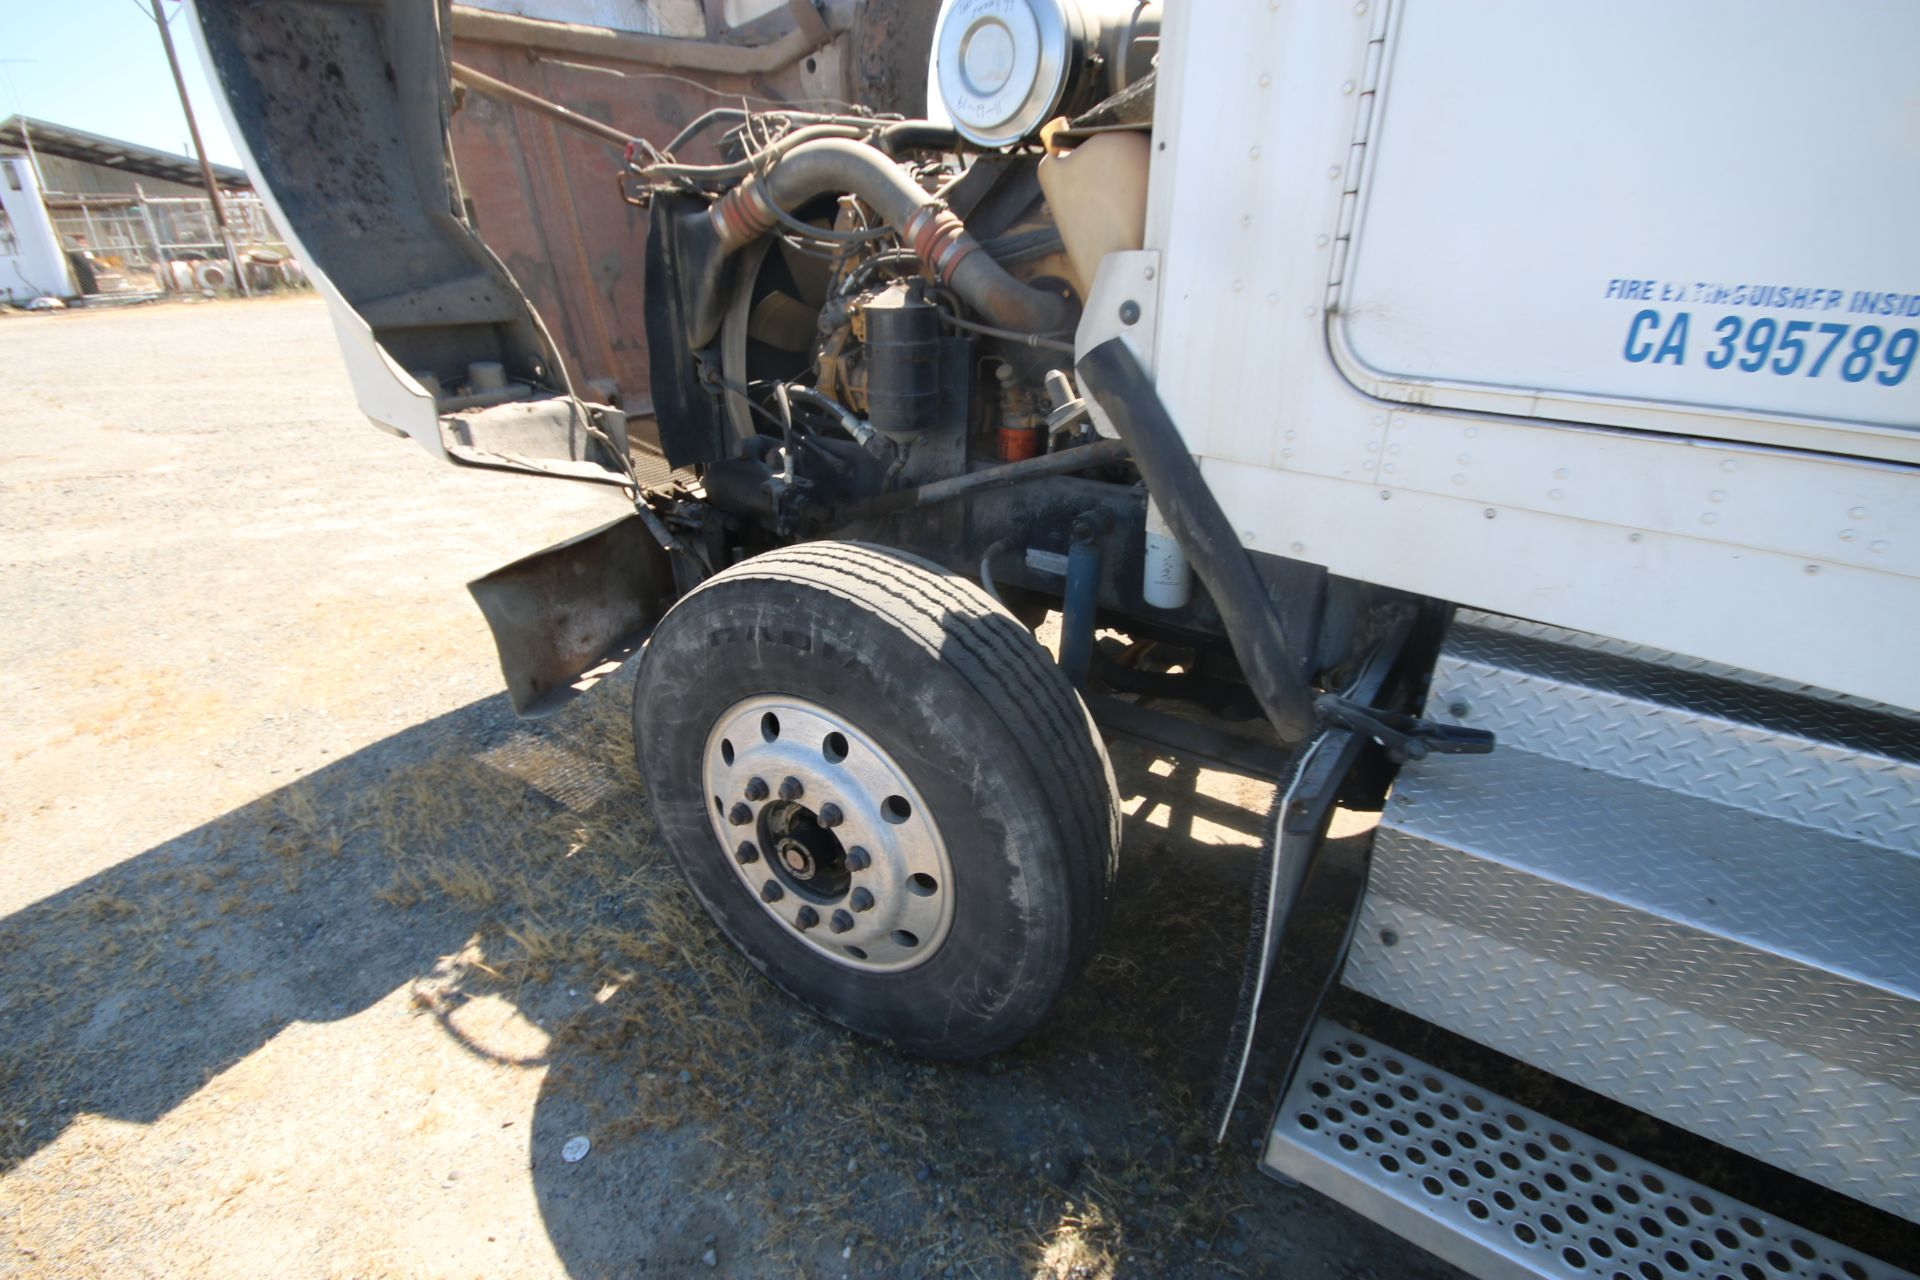 1996 Kenworth 3-Axle Roll-Off Straight Truck, VIN #: 1XKDDB9XOTS687107, with 24,722 Miles, License - Image 30 of 30